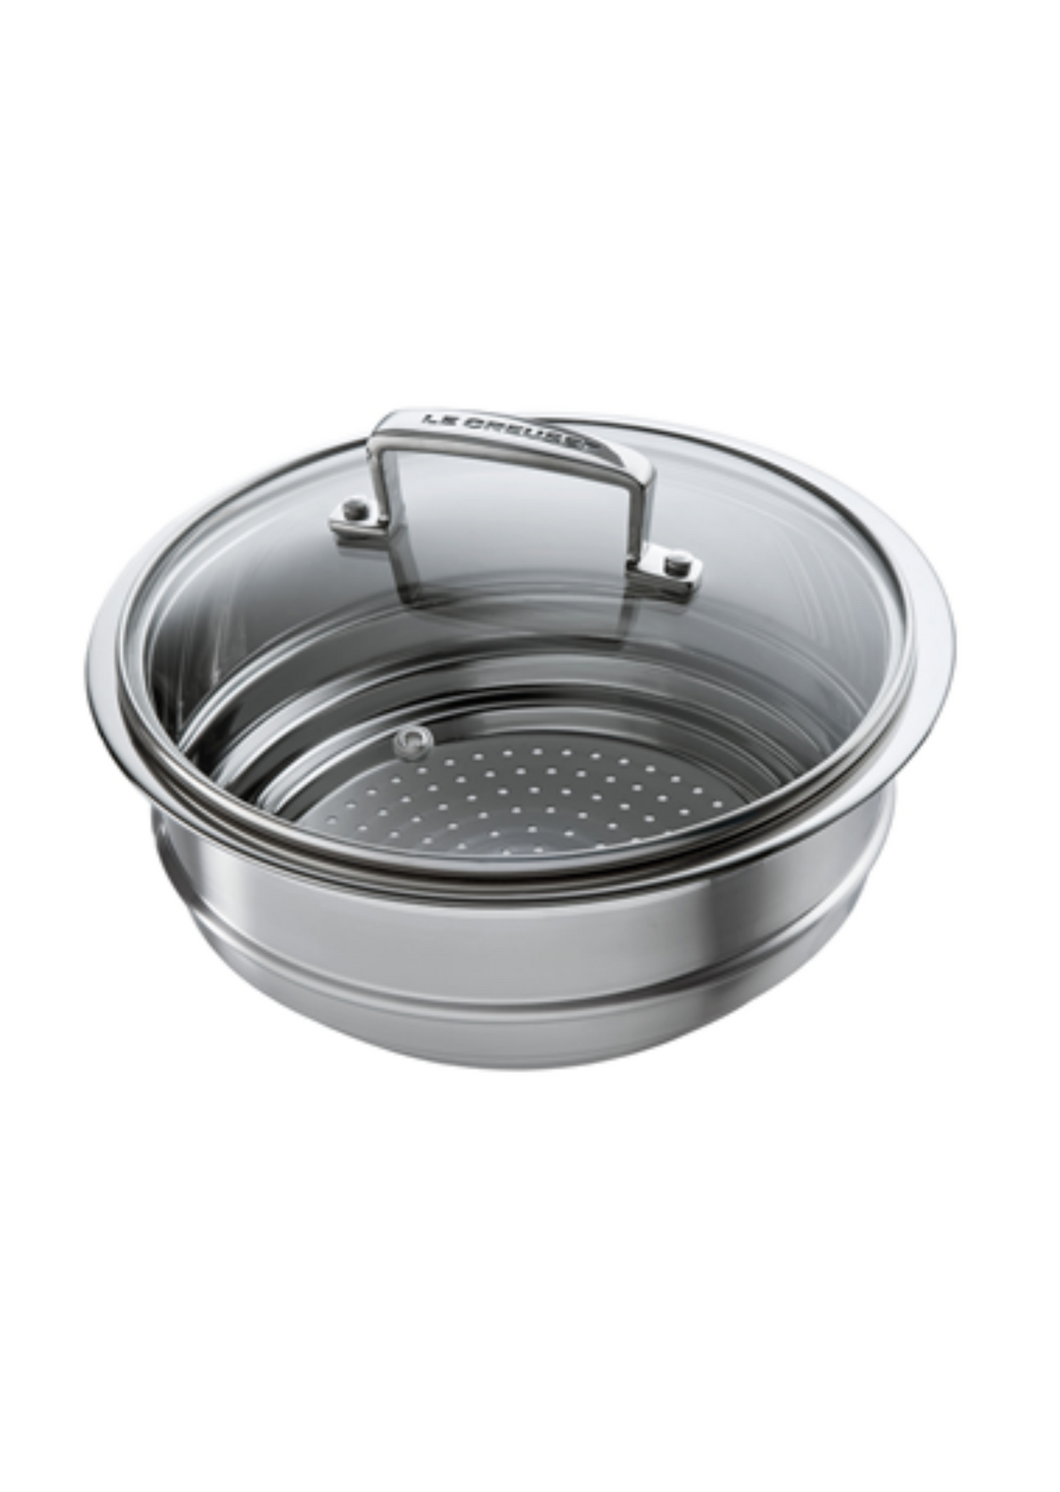 Le Creuset 3 ply Stainless Steel Multi Steamer with Glass Lid